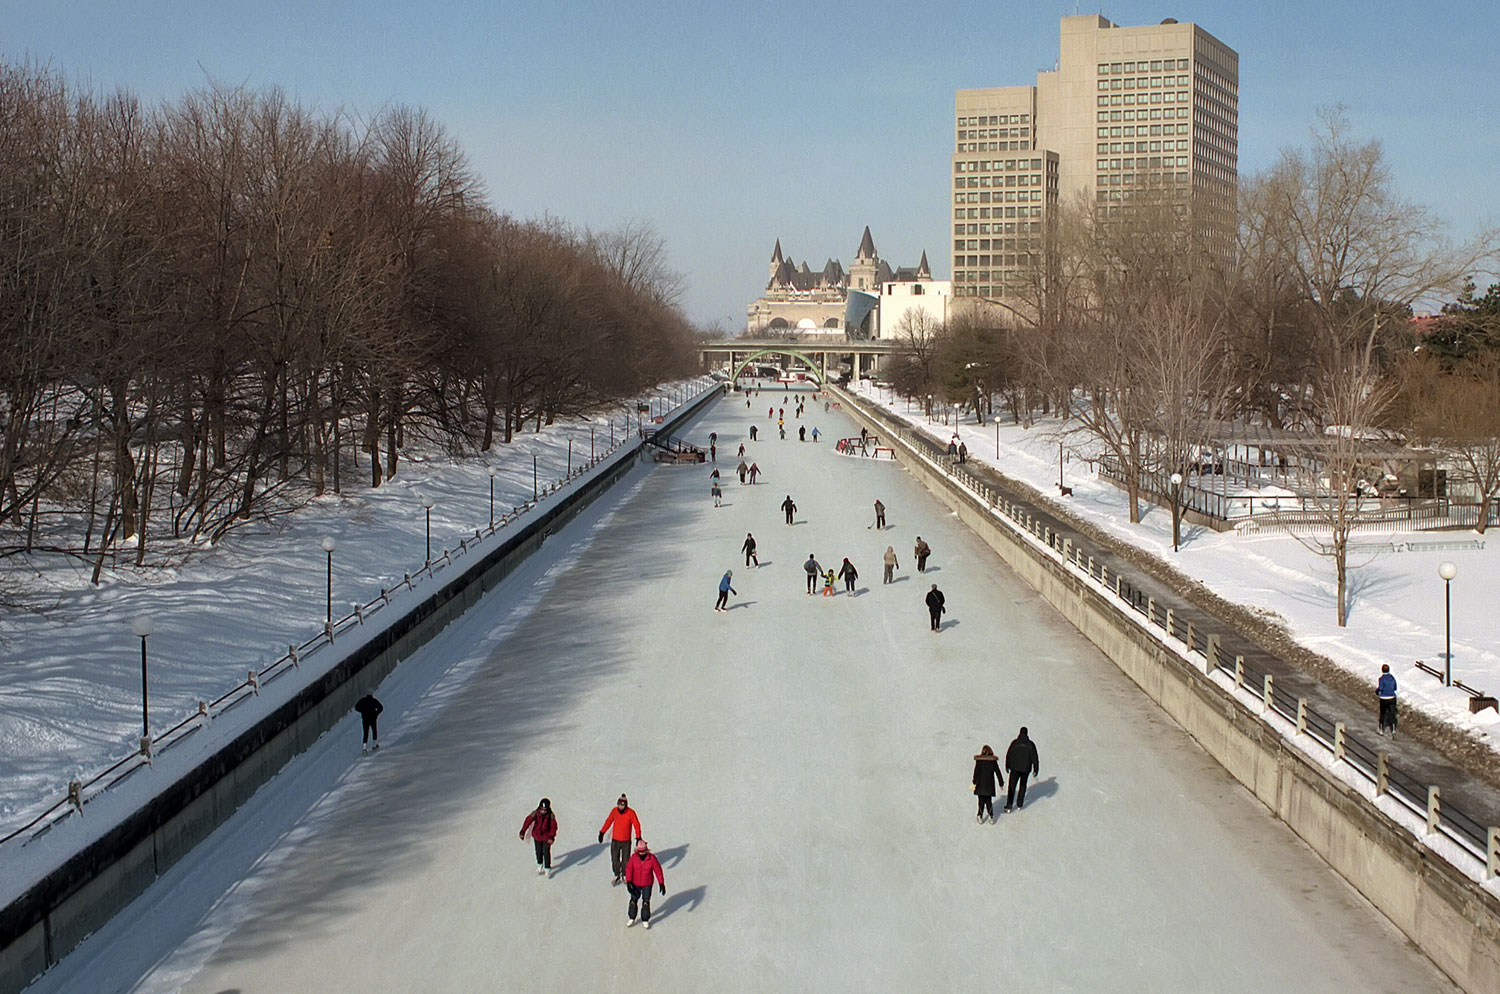 According to Guinness, this is the world's largest naturally frozen ice rink. Ottawa, the Canadian capital, boasts an ice surface that's the equivalent to 90 Olympic-sized rinks. More than 4.8 miles long, the picture-perfect Skateway winds past Canada's Parliament Buildings and the majestic Chateau Laurier Hotel.